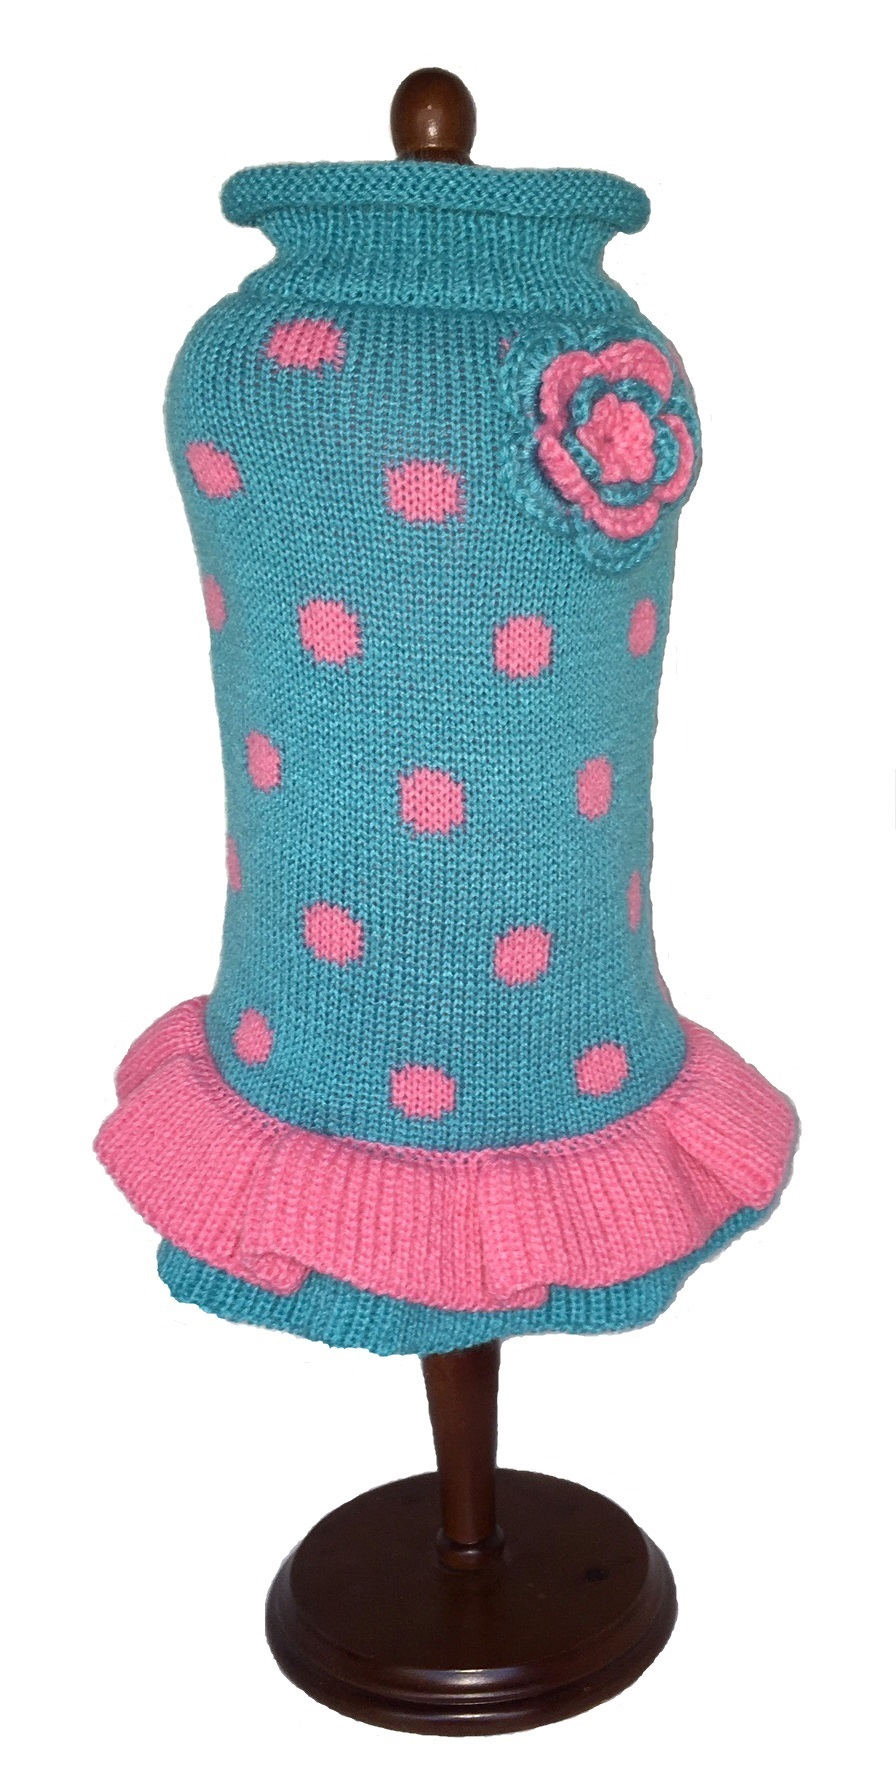 Dallas Dogs Sweater Dress, Turquoise & Pink Polka Dot, 8-in